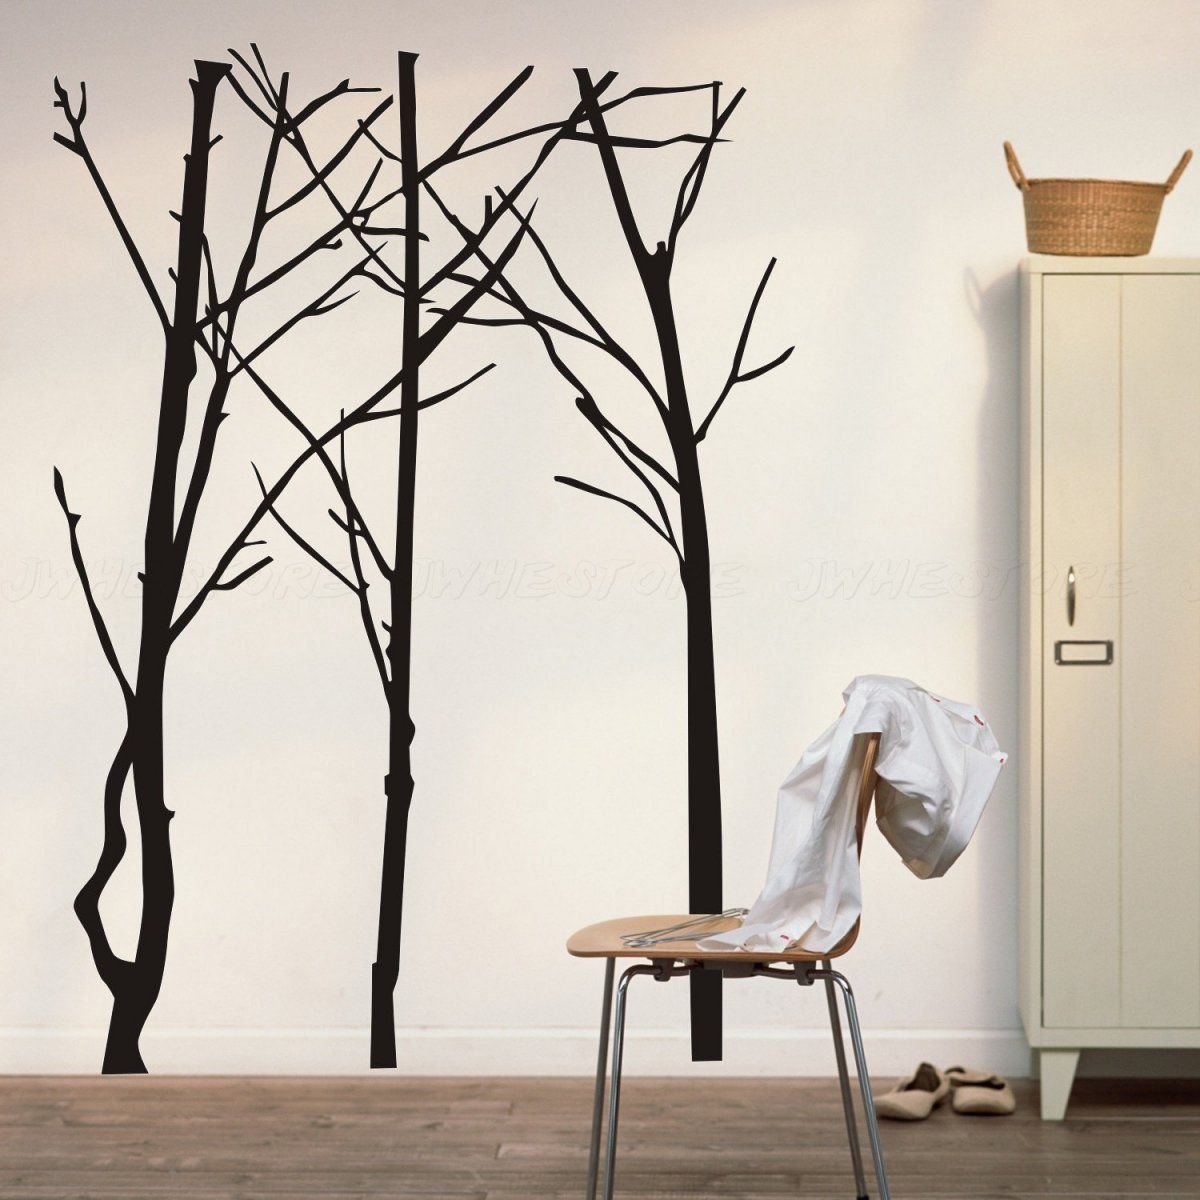 Simple Minimalist Black Birch Tree Silhouette Wall Decals Wall ... for Wall Sticker Tree Silhouette  35fsj